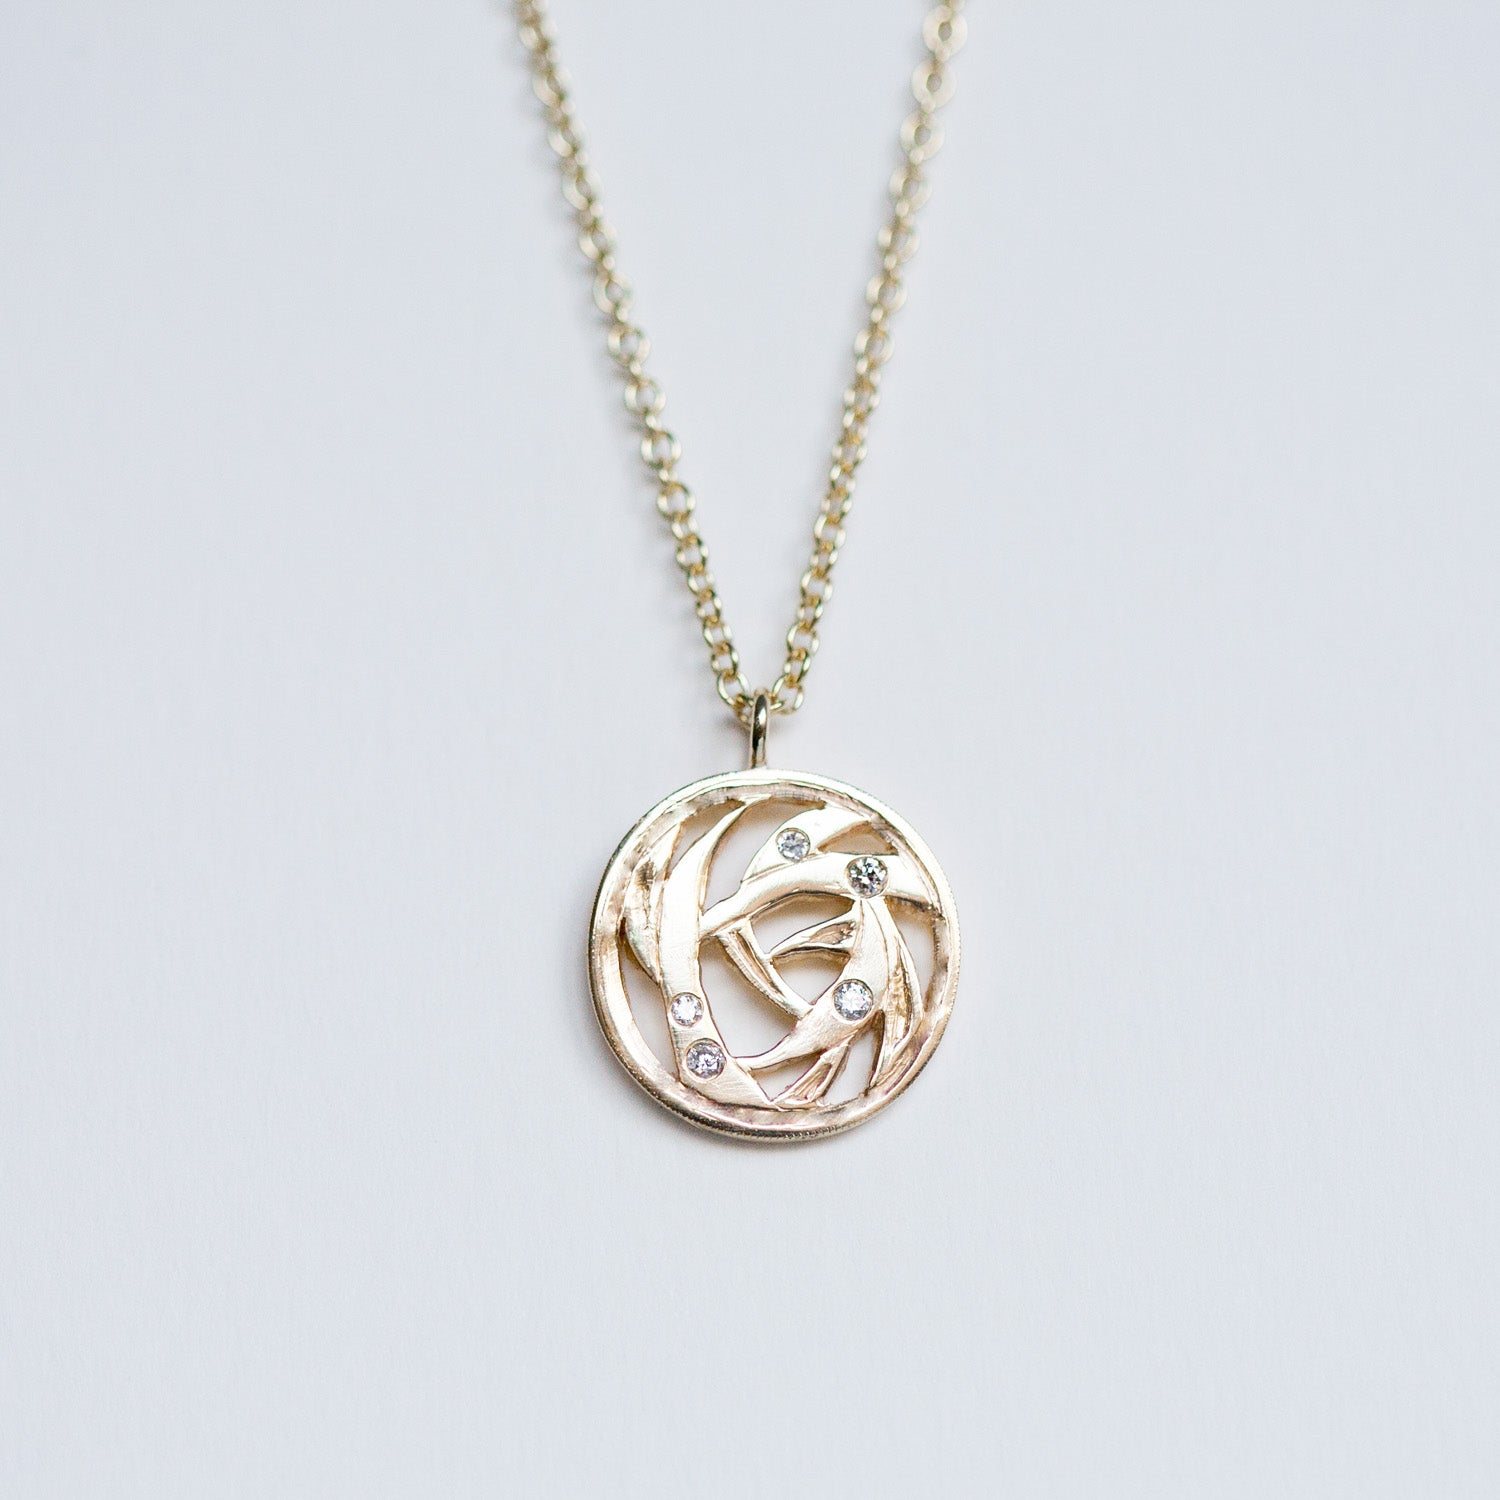 Intersteller necklace